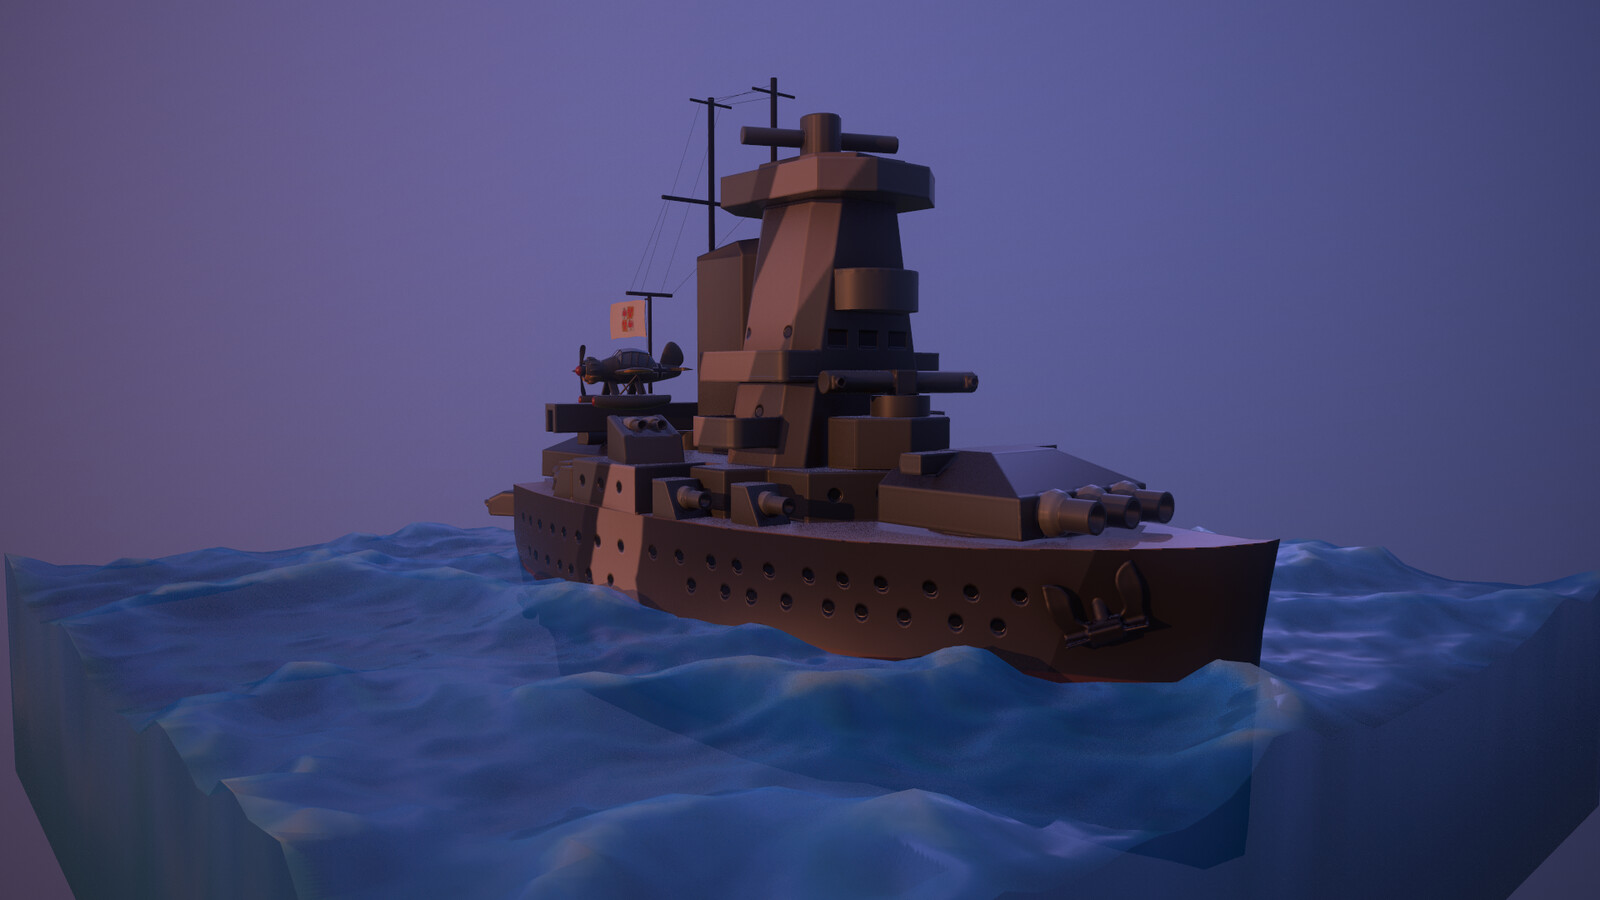 Even in the early evening the pocket battleship needs to patrol